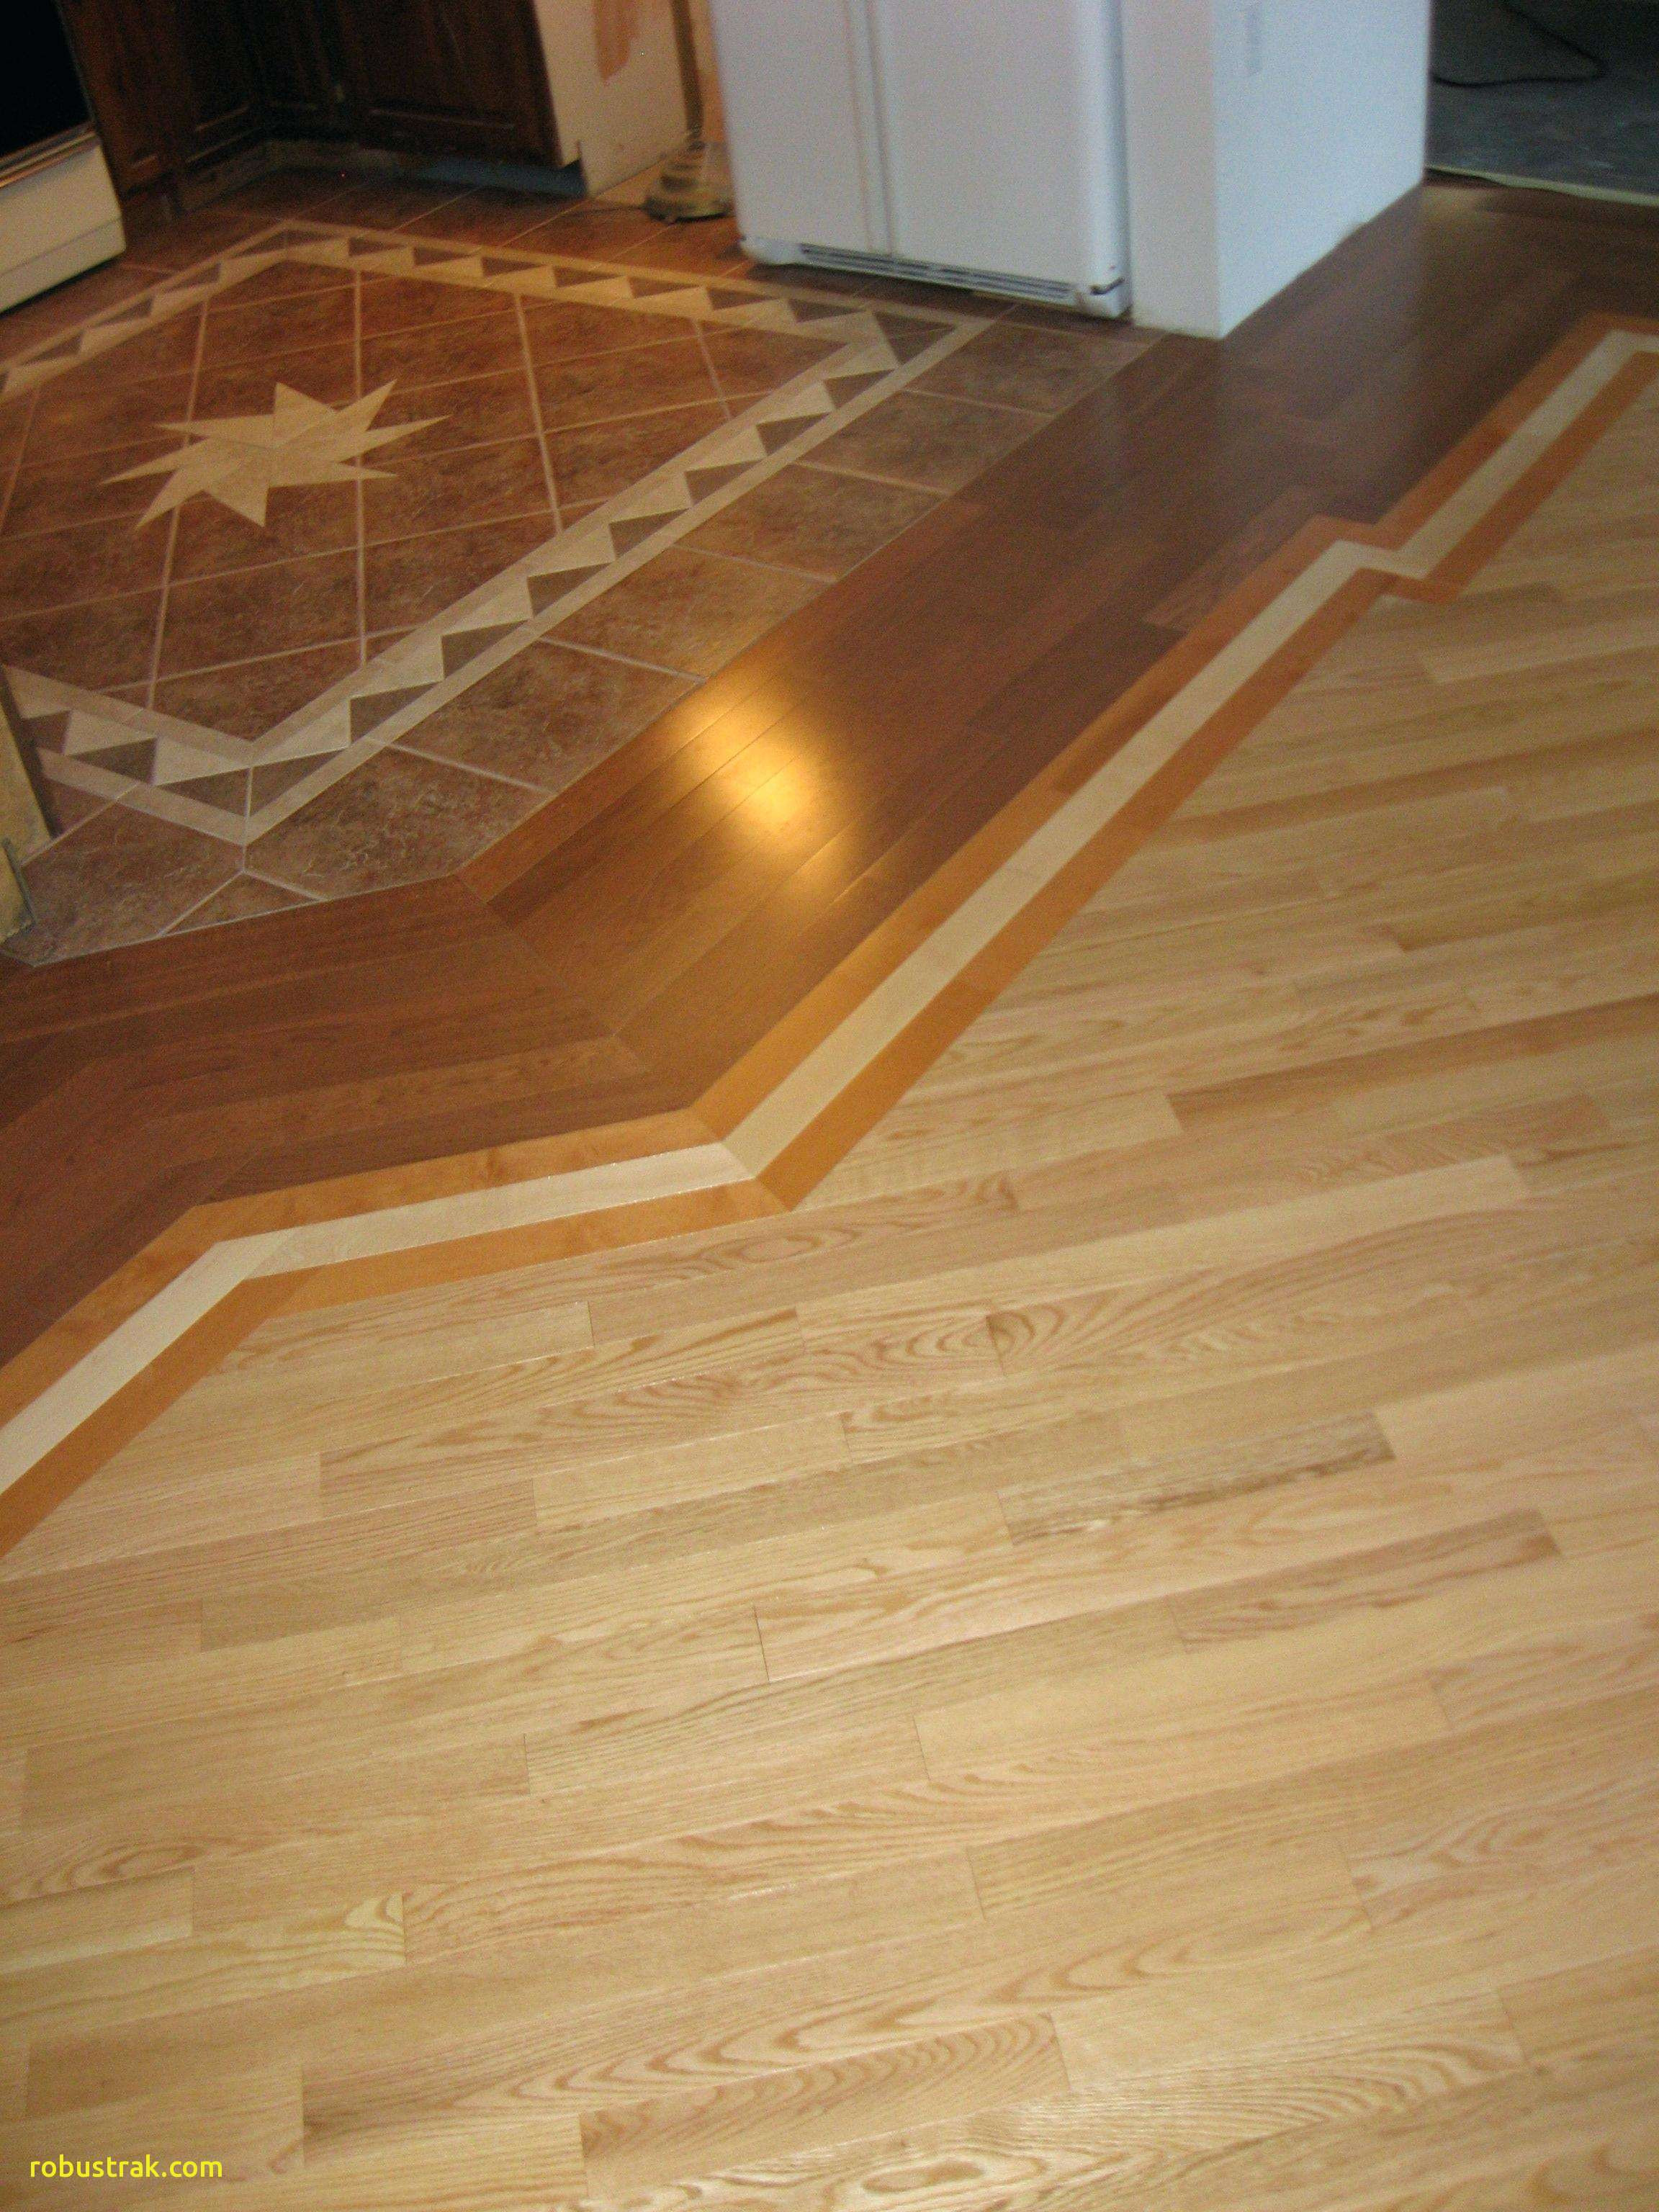 tile flooring like hardwood of inspirational wood to tile transition strips home design ideas for full size of flooring wooden floor tiles priceod in india flooring tile transition to strips